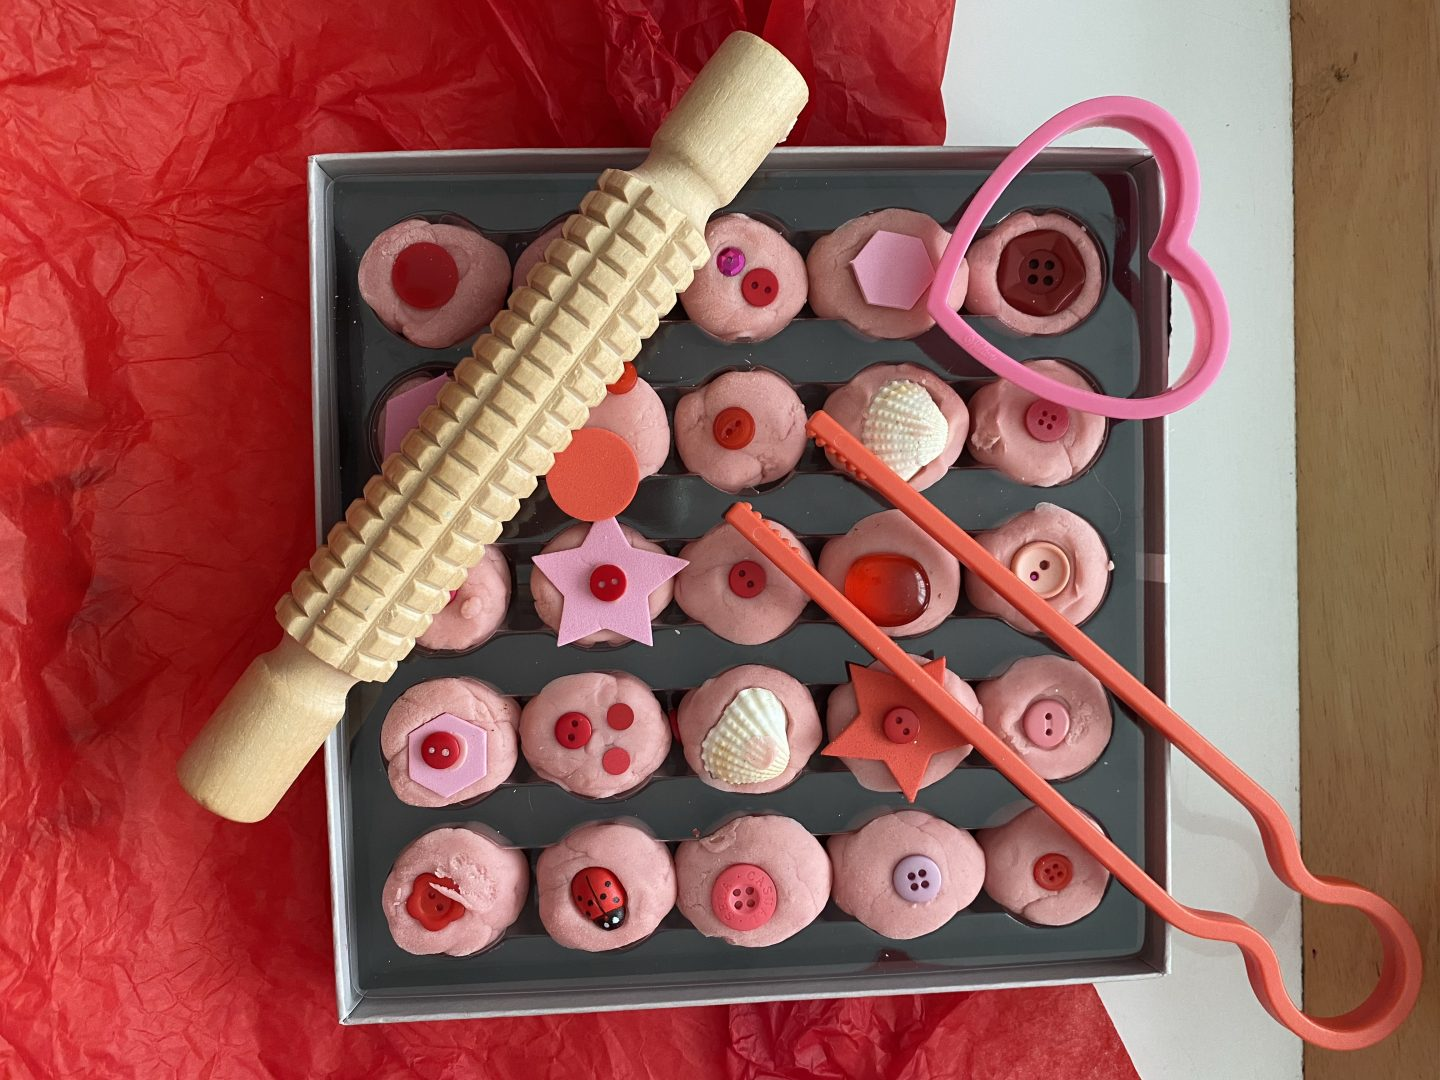 February activities for kids with a box of valentines Playdough chocolates with rolling pin, cookie cutter and chopsticks